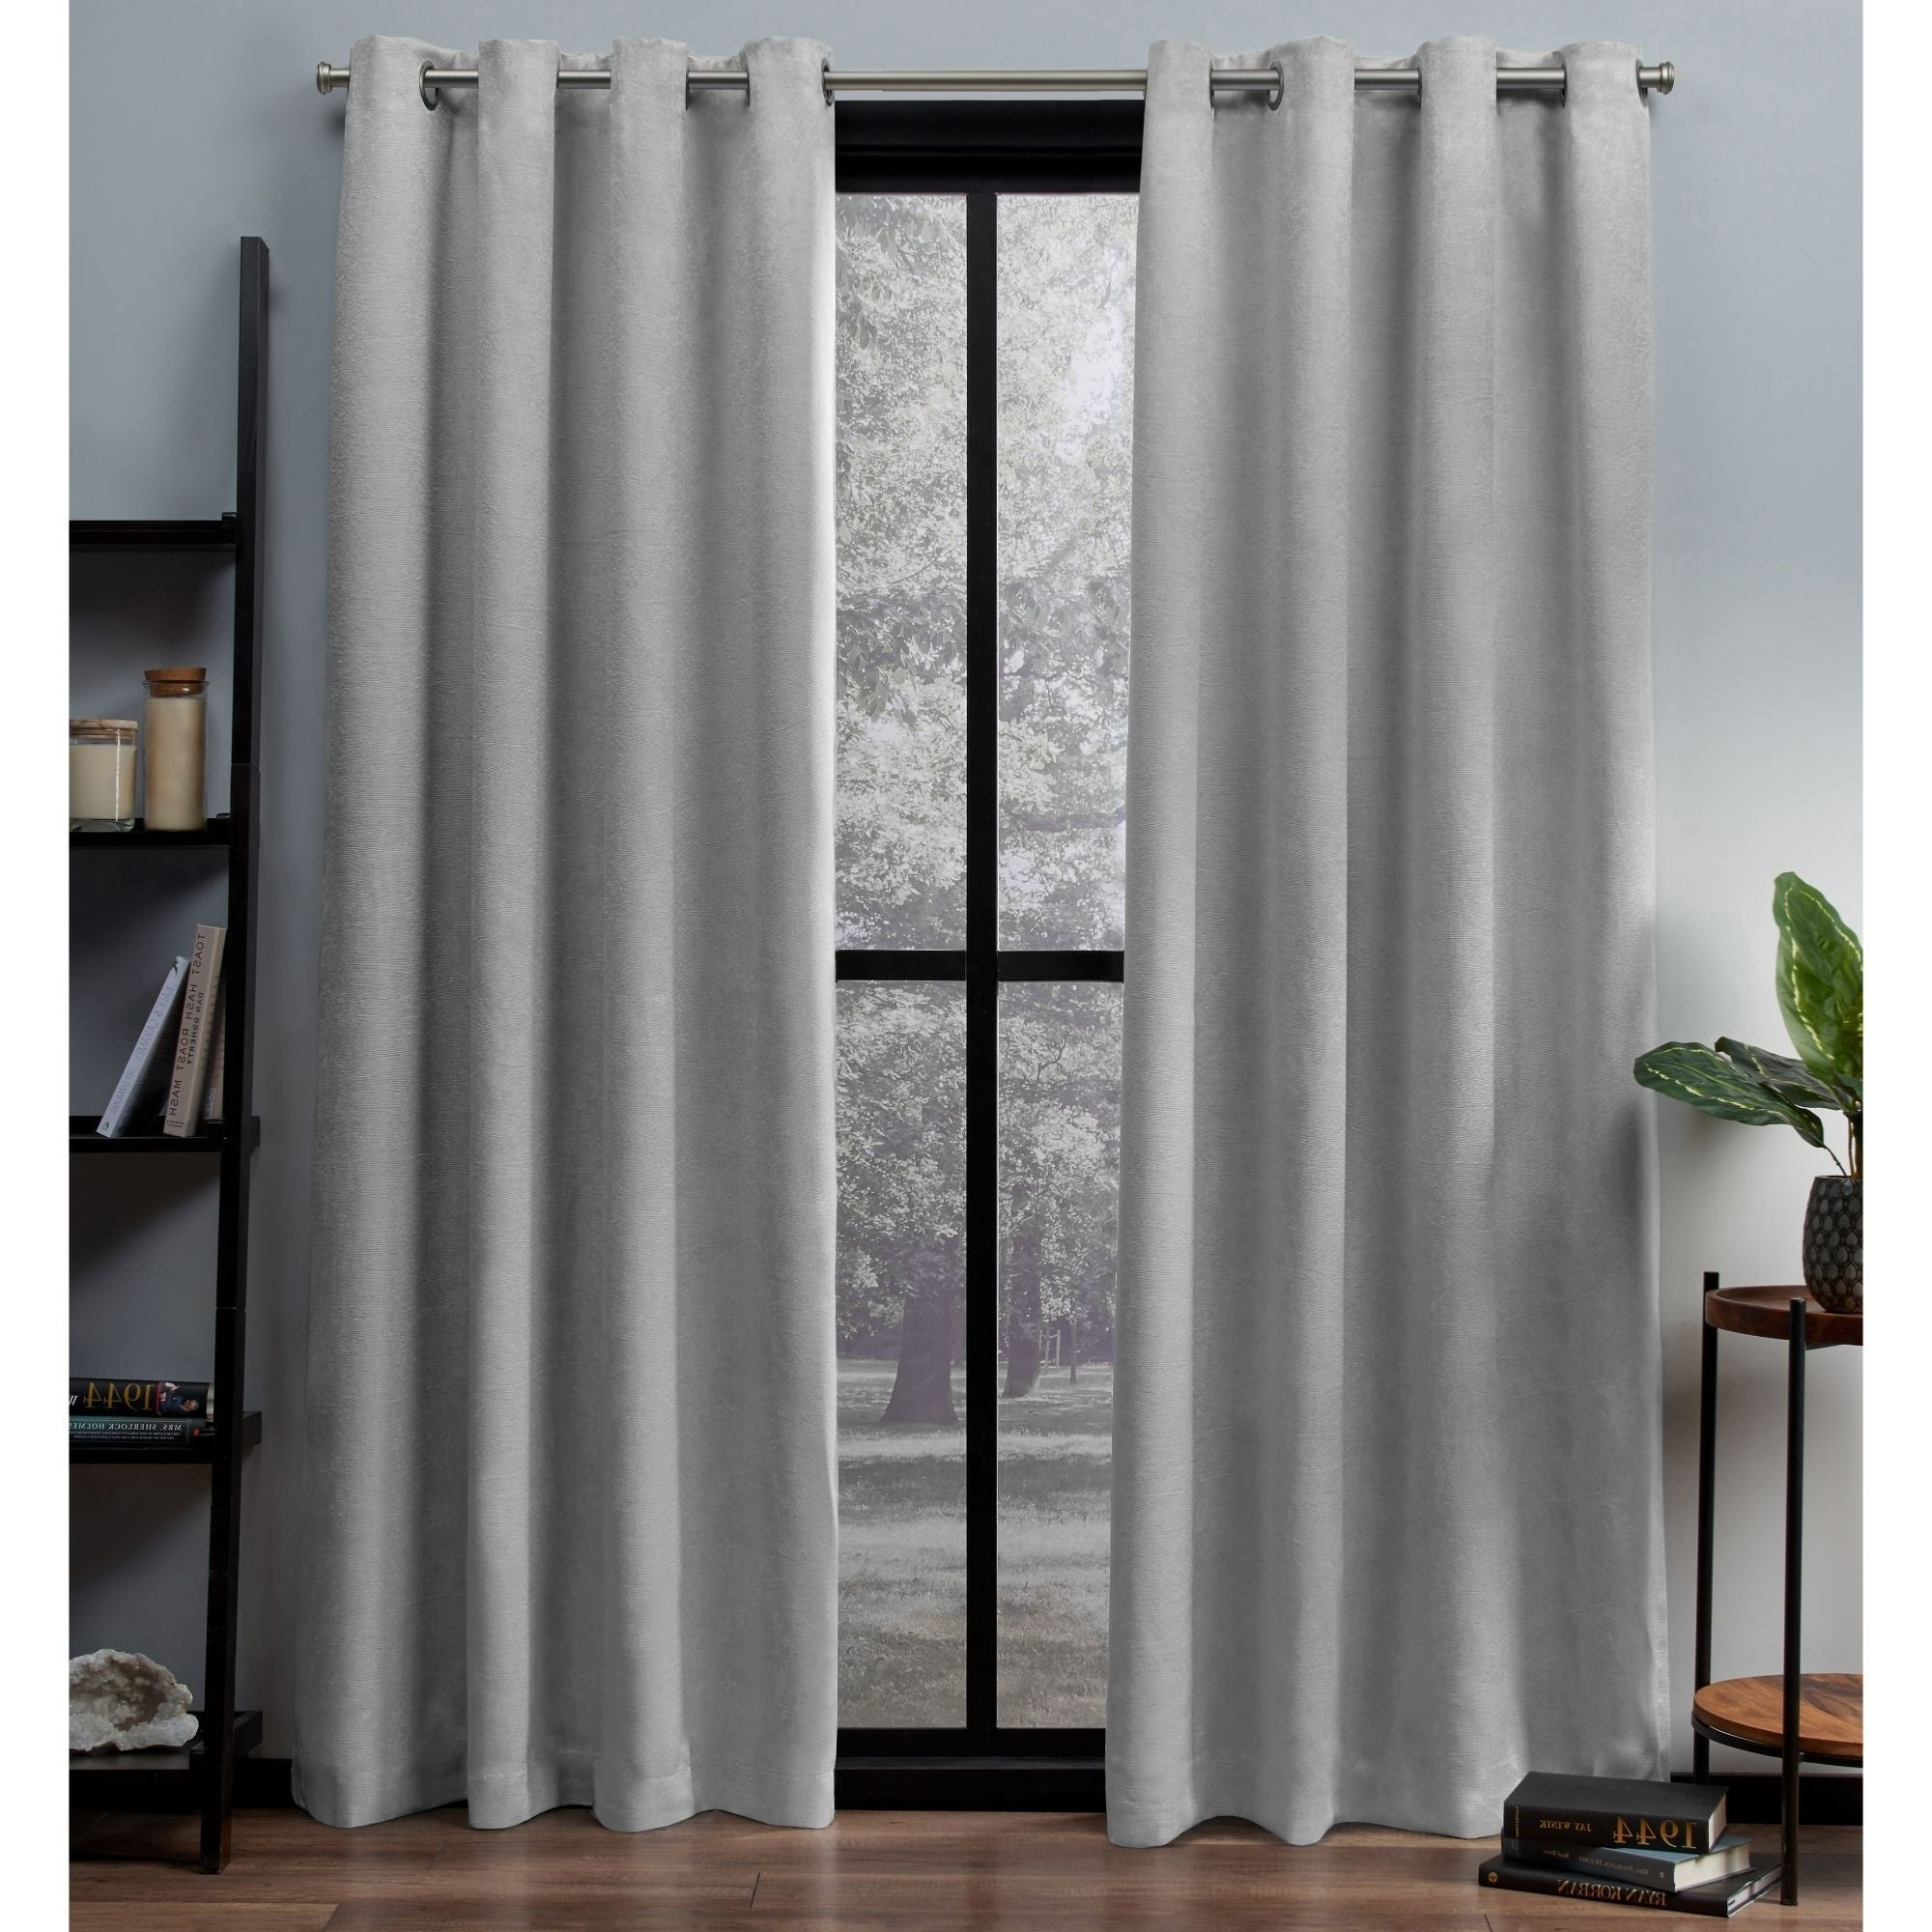 Newest Woven Blackout Grommet Top Curtain Panel Pairs With Ati Home Oxford Sateen Woven Blackout Grommet Top Curtain Panel Pair (View 15 of 20)